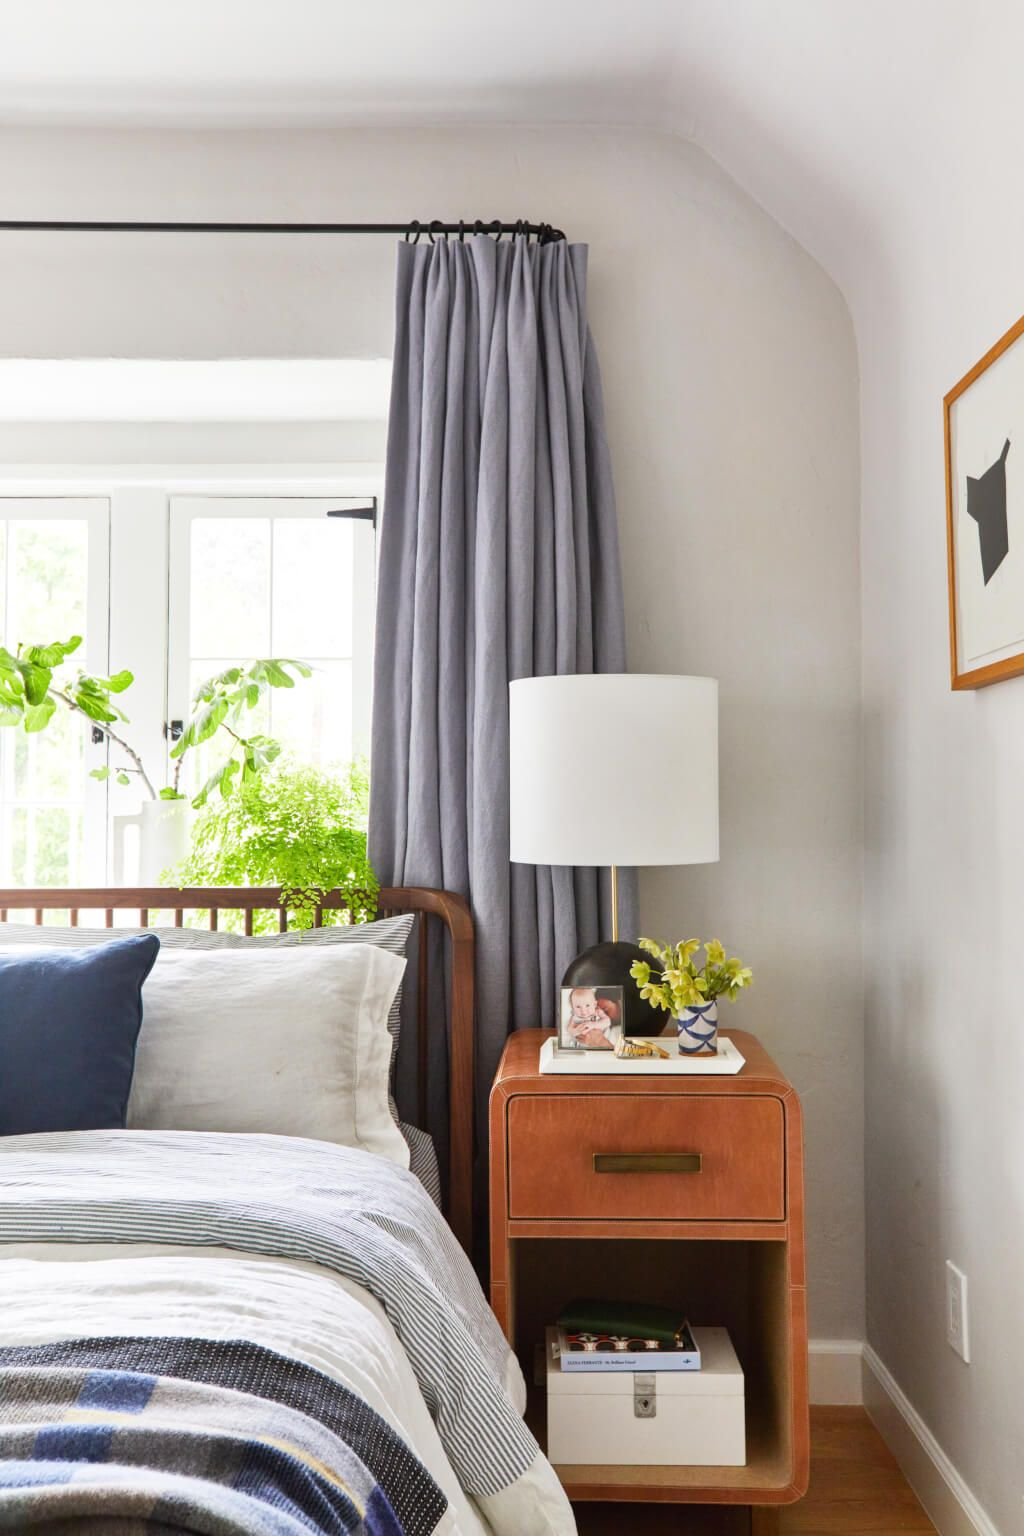 Our Master Bedroom Reveal + Get The Look - Emily Henderson